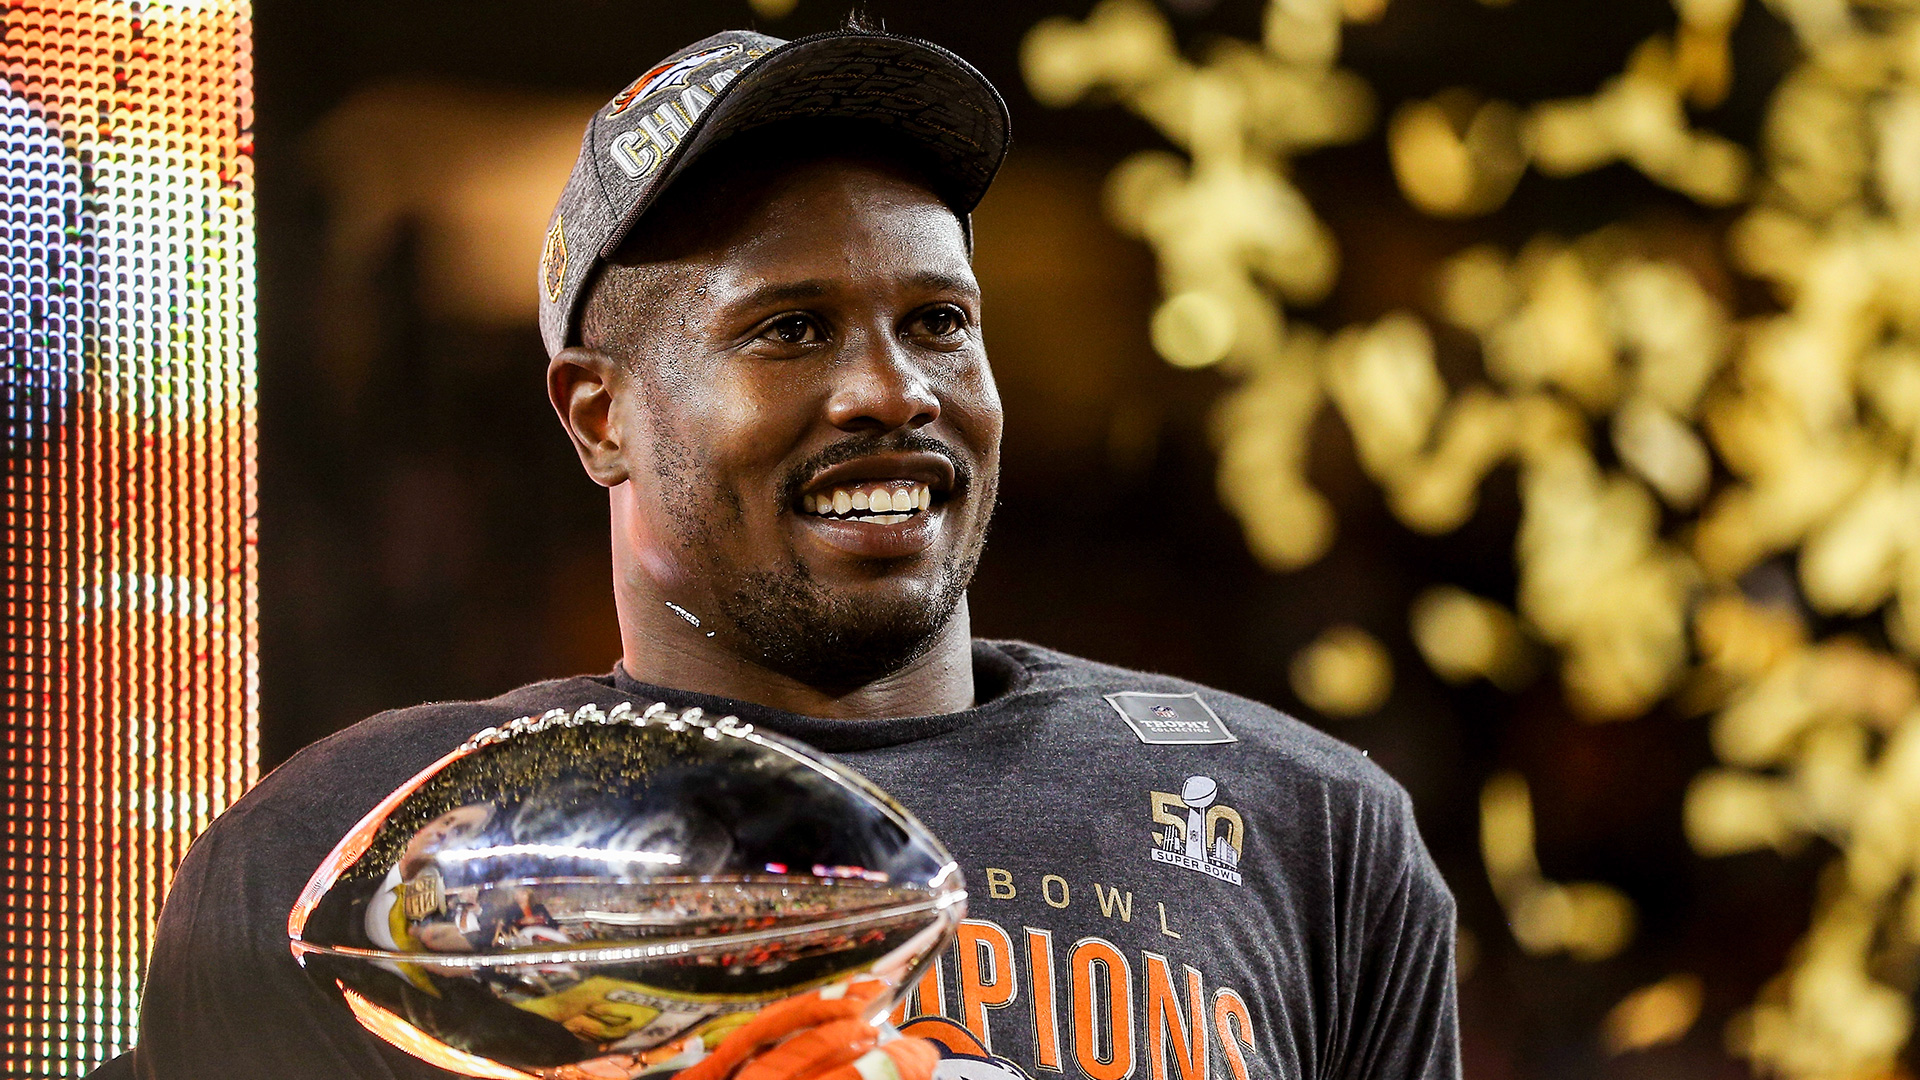 Cowboys-signing-von-miller-crazy-awesome-or-just-crazy-2